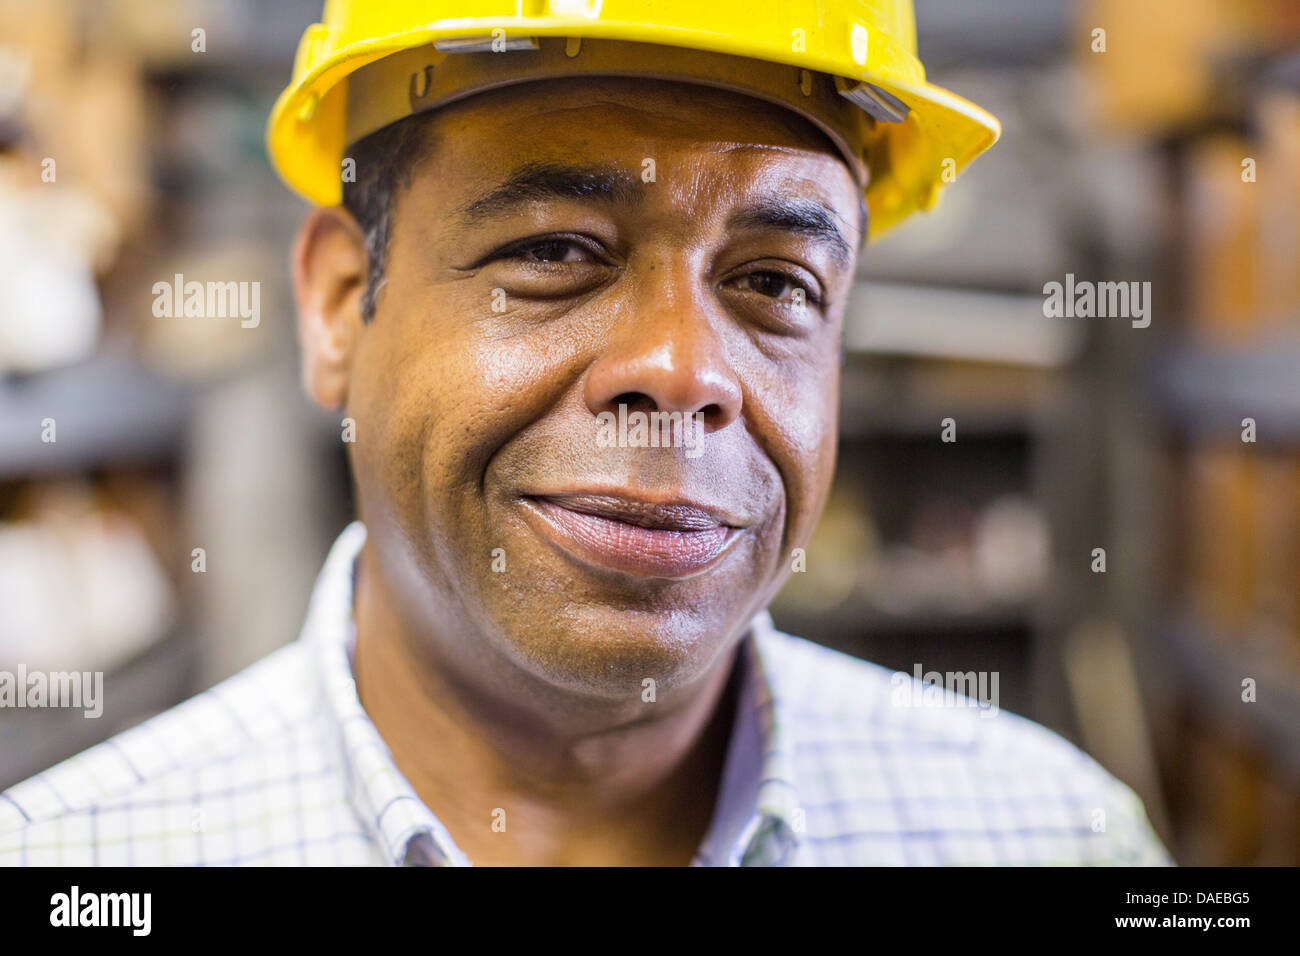 Close up portrait of man in stockroom wearing hard hat - Stock Image